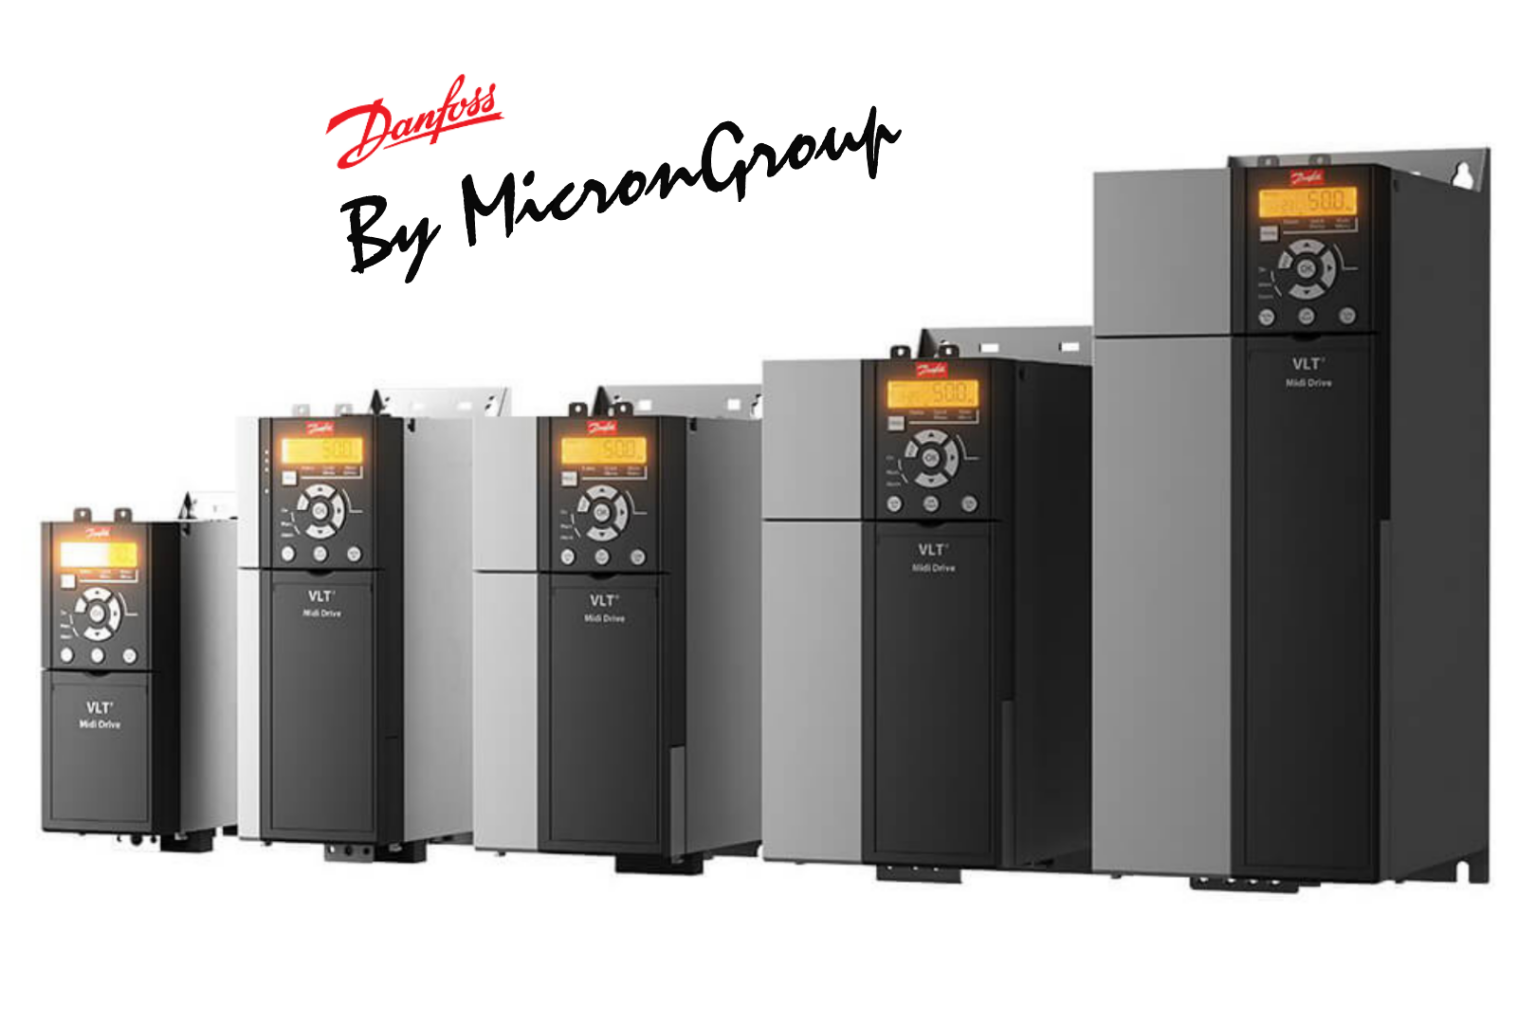 microngroup-variable-speed-drives-danfoss-range-of-microdrives-by-microngroup